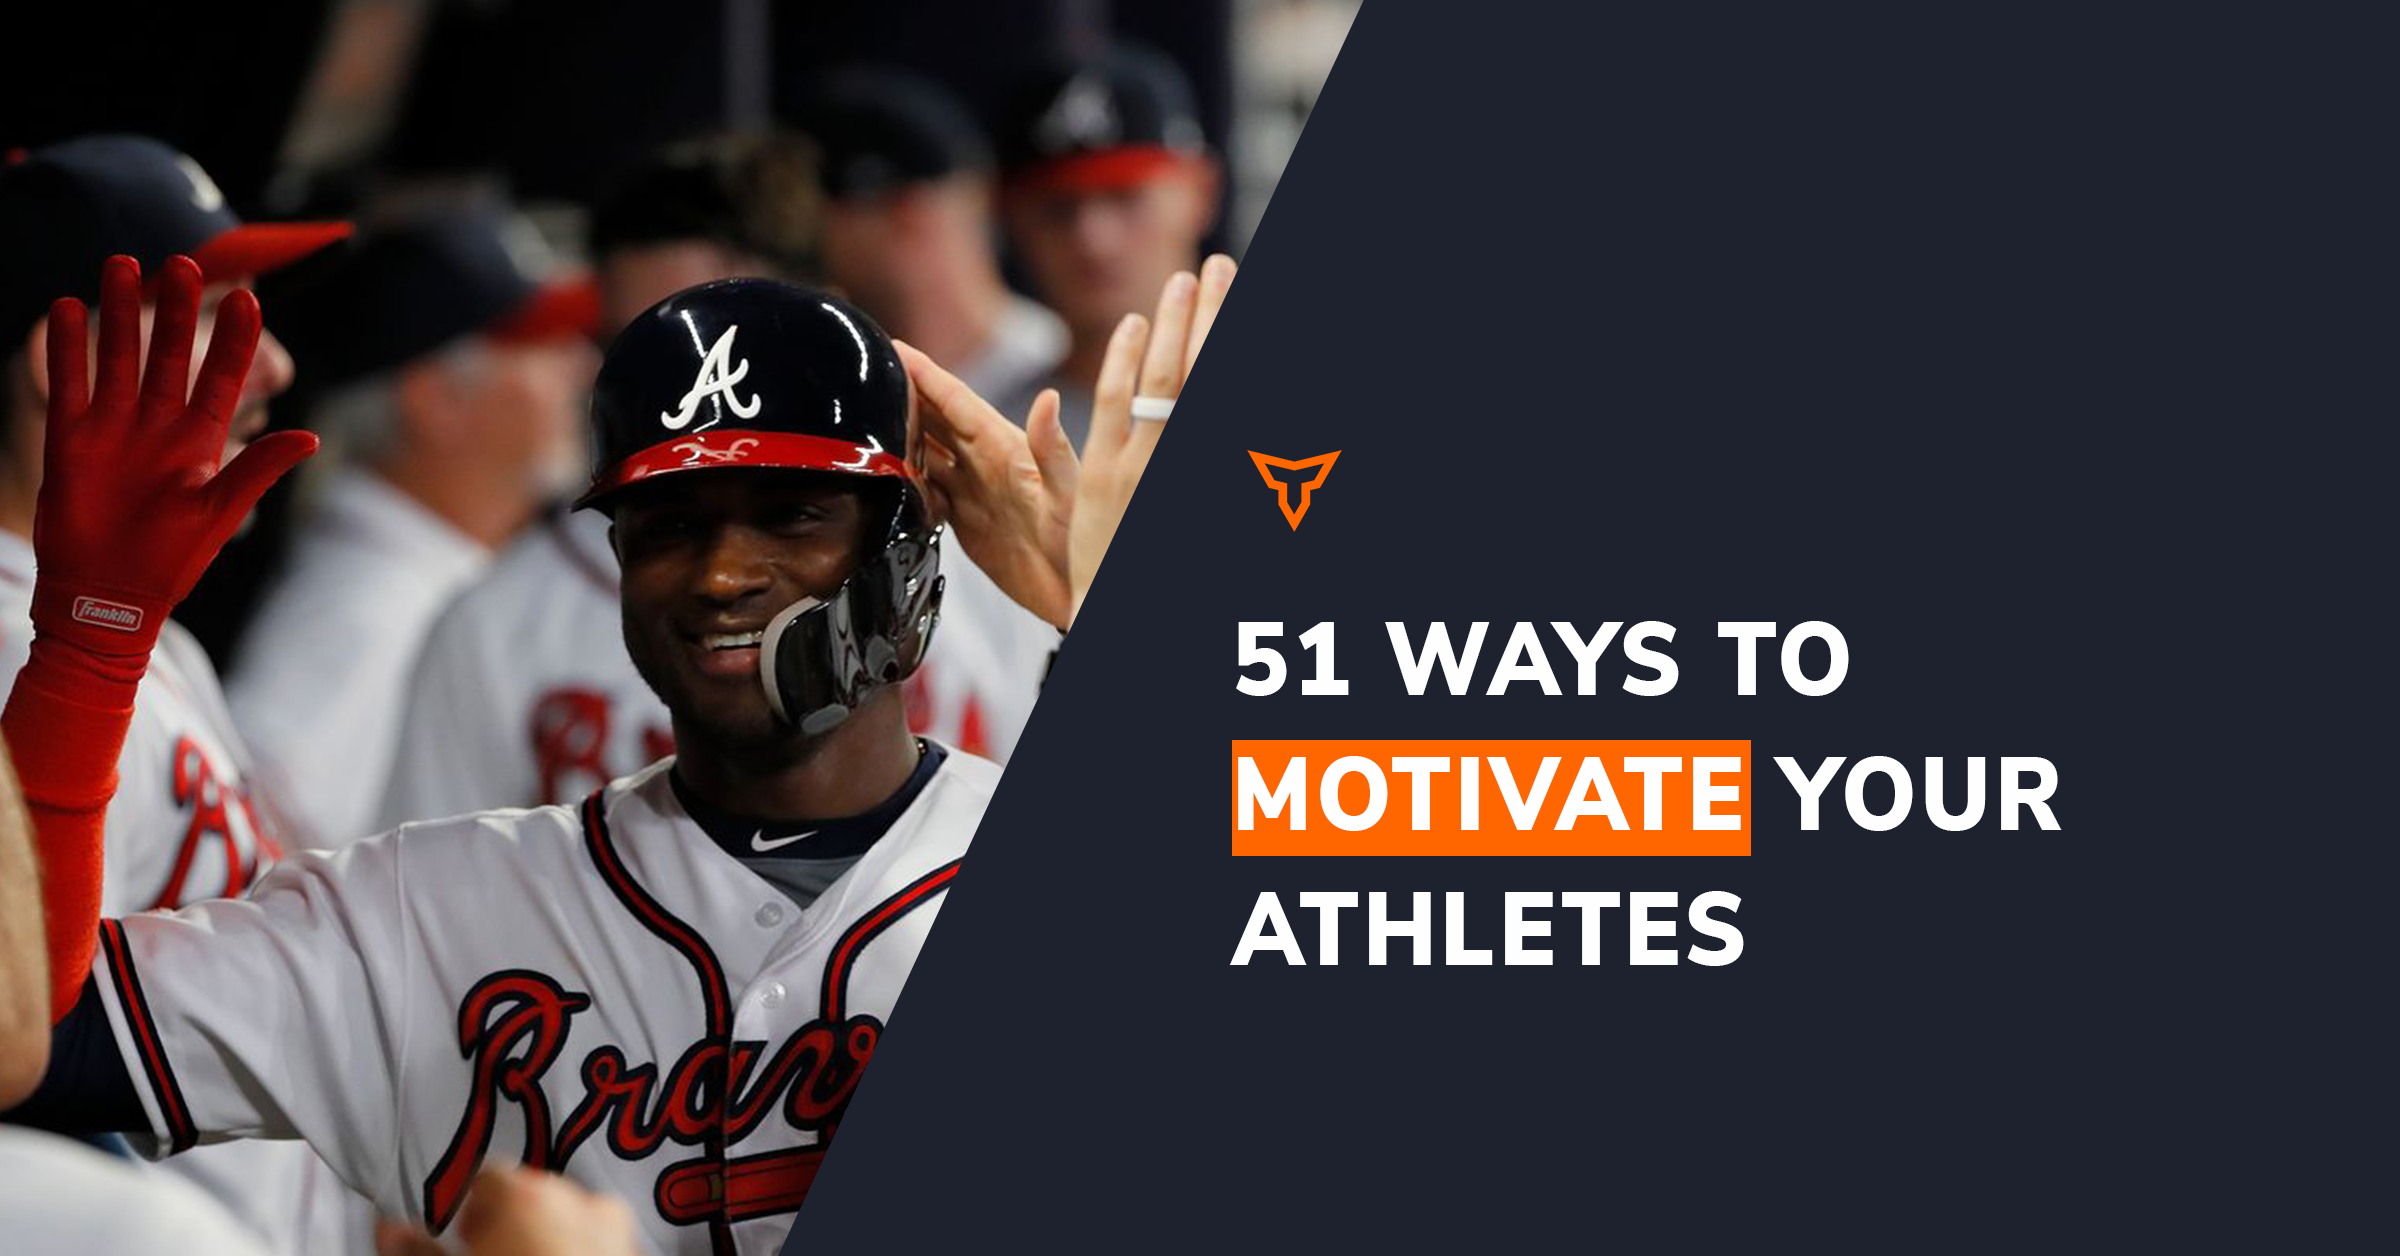 eBook 51 ways to motivate card image